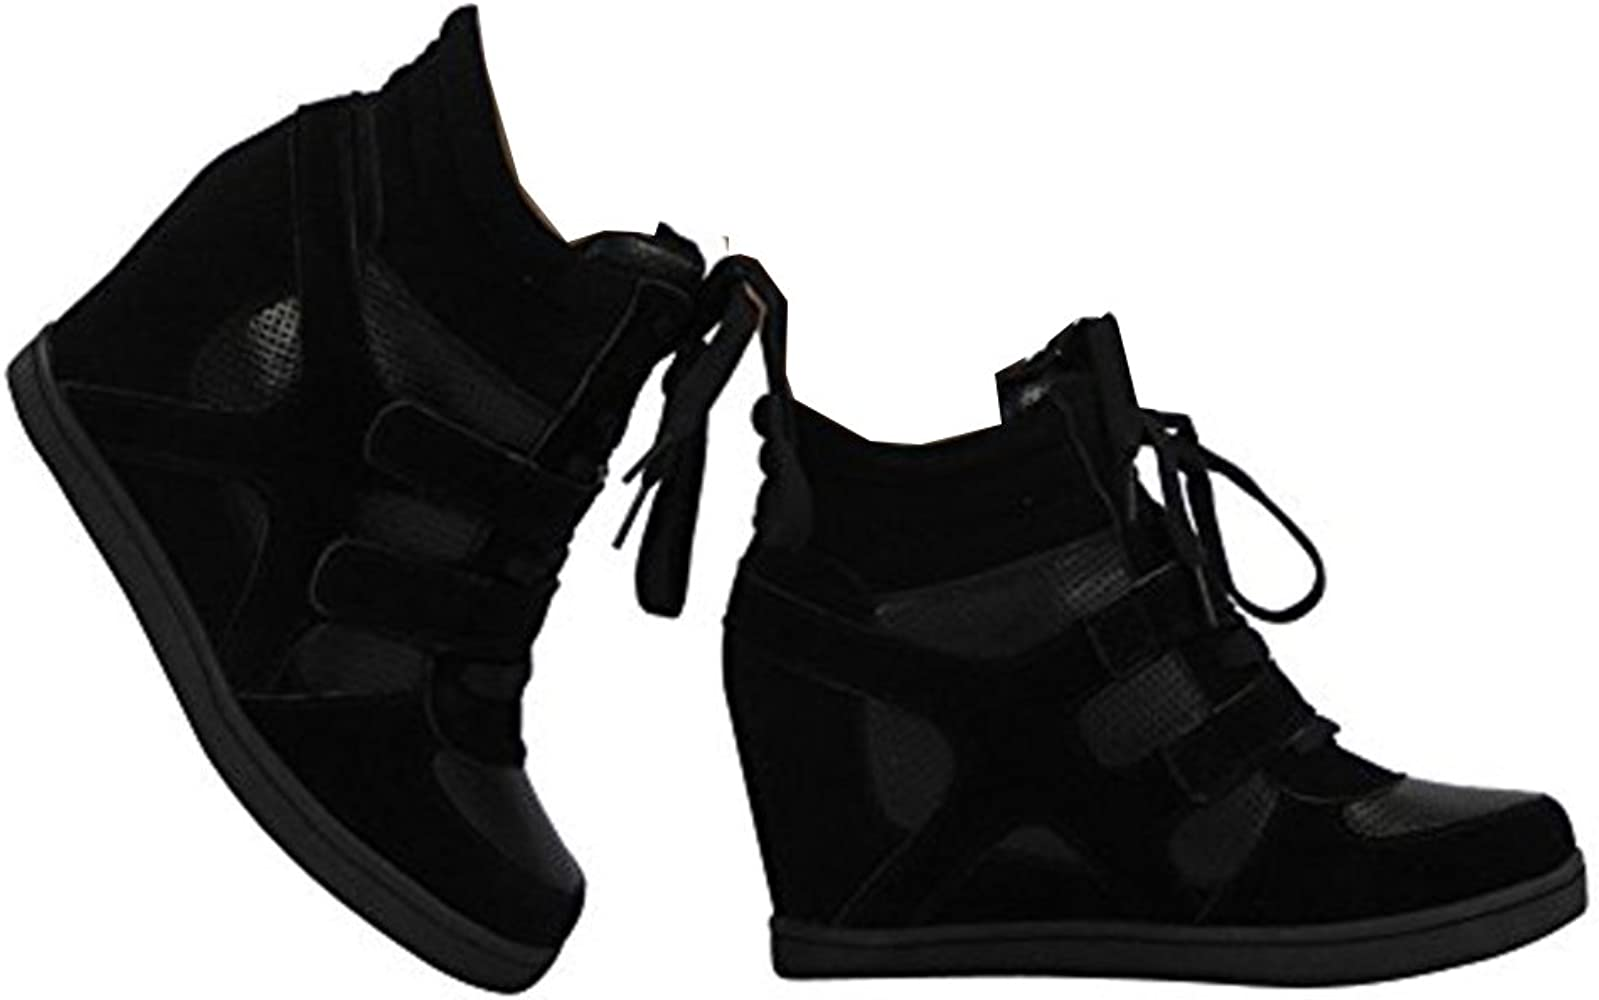 LADIES SNEAKERS FLAT LACE UP HI TOP ANKLE WOMENS CONCEALED WEDGE TRAINERS 3-8